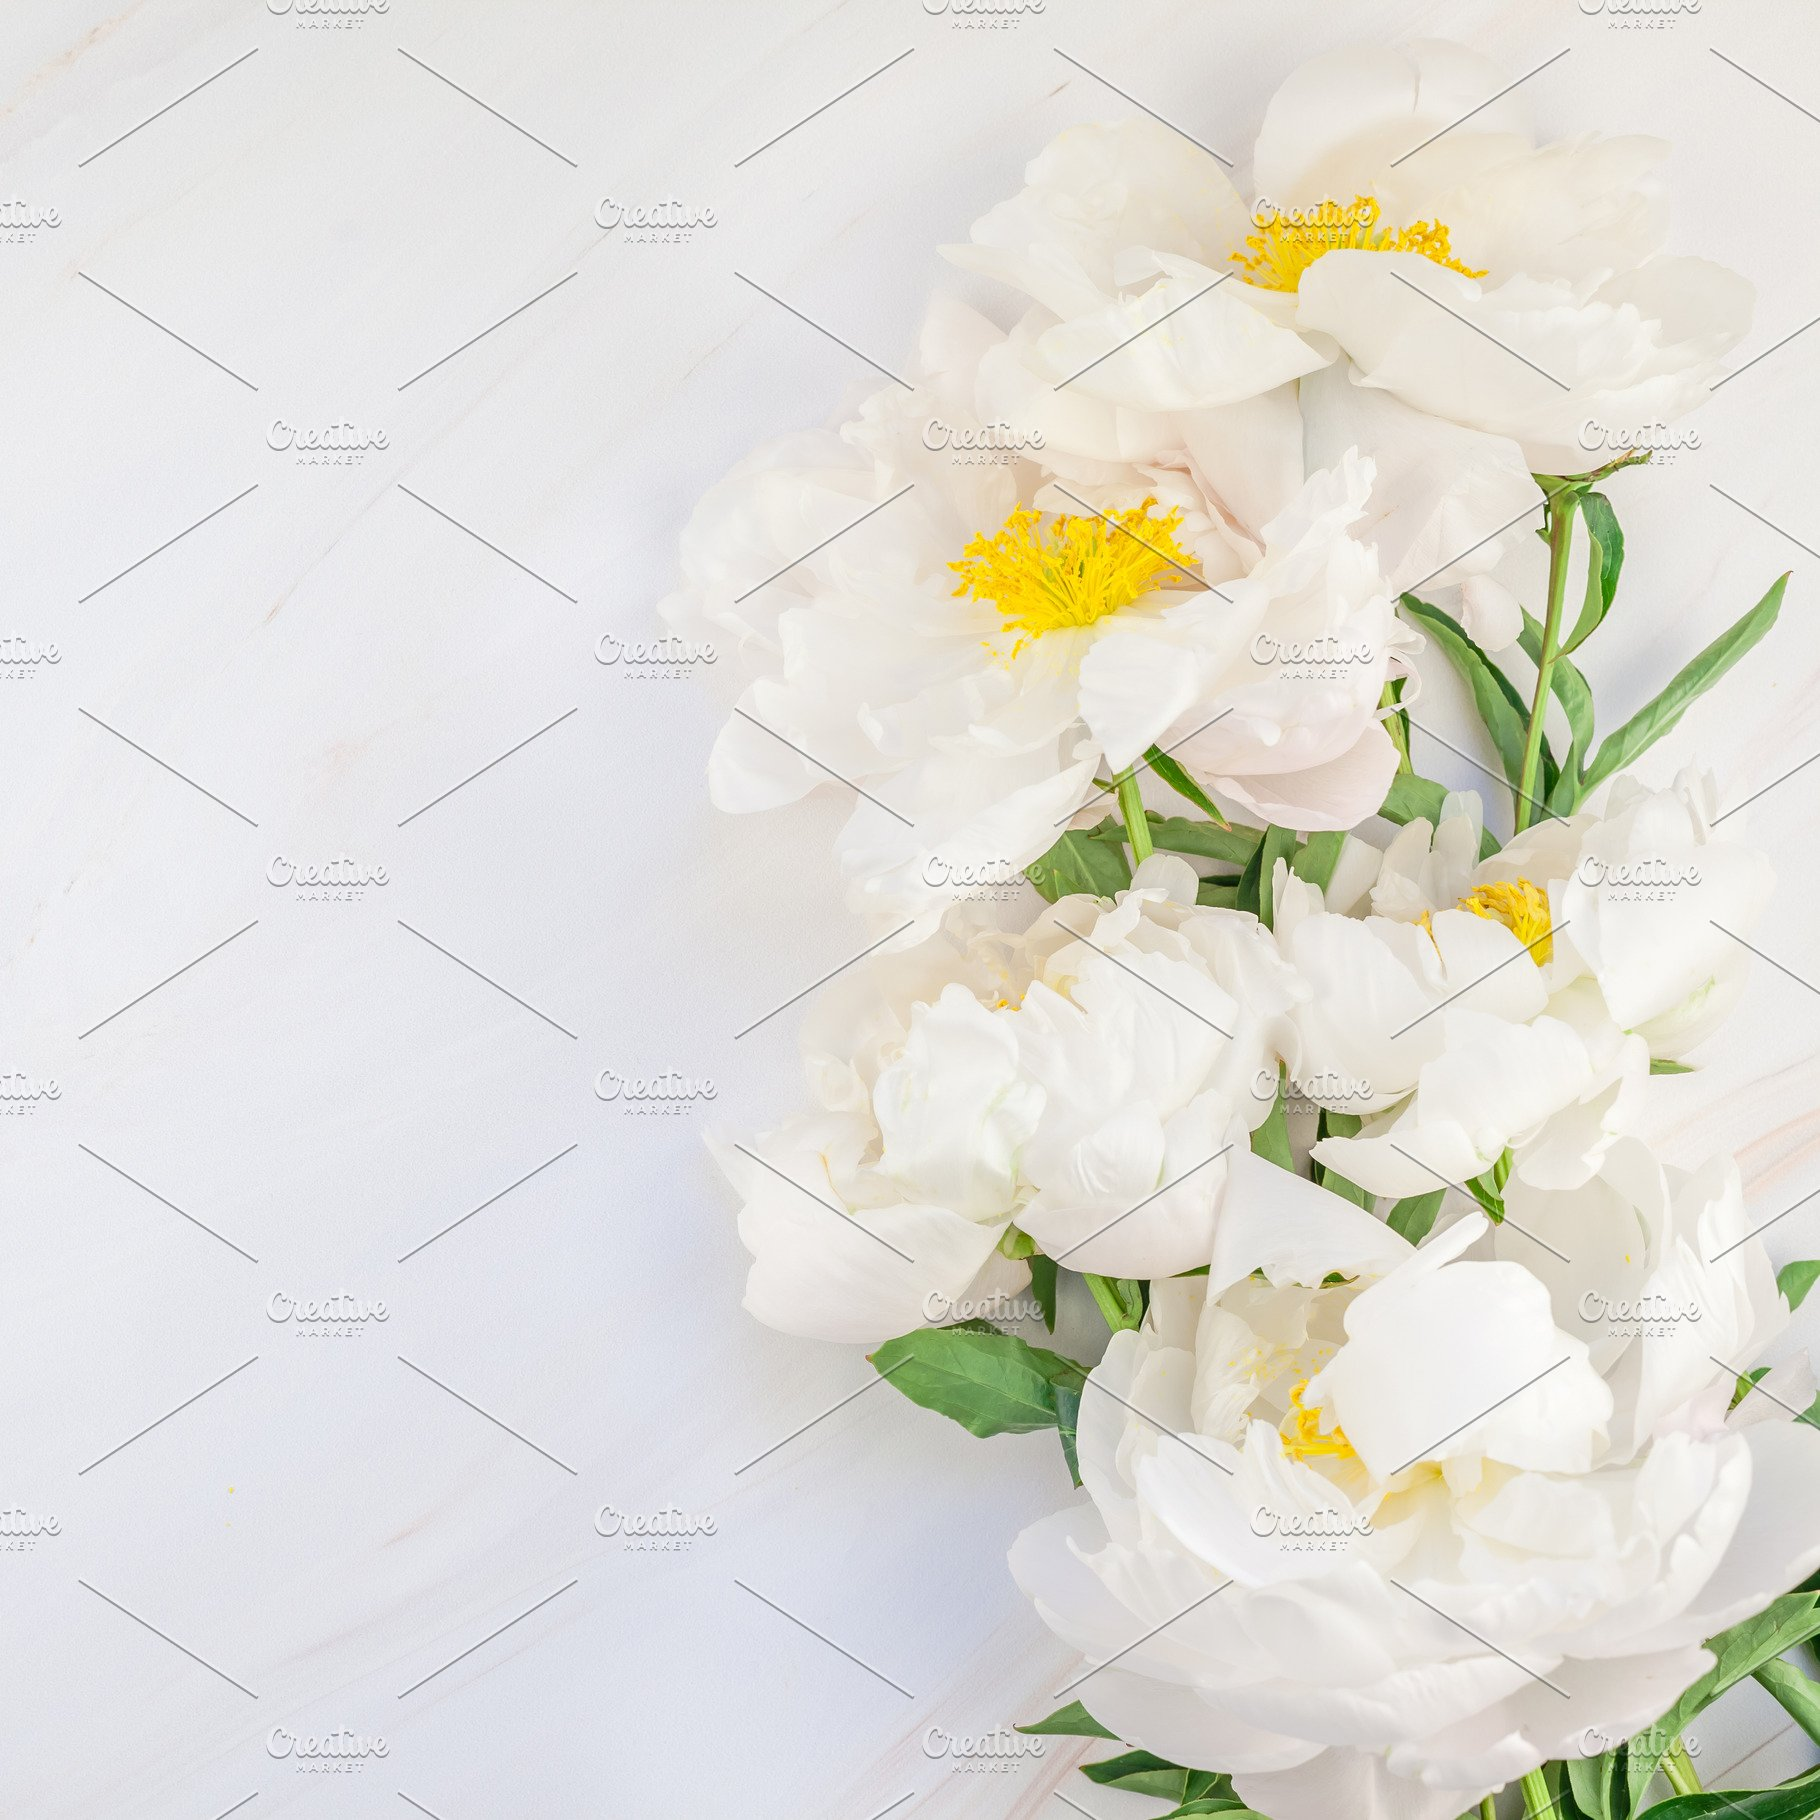 White Peony Flowers On Marble Arts Entertainment Photos